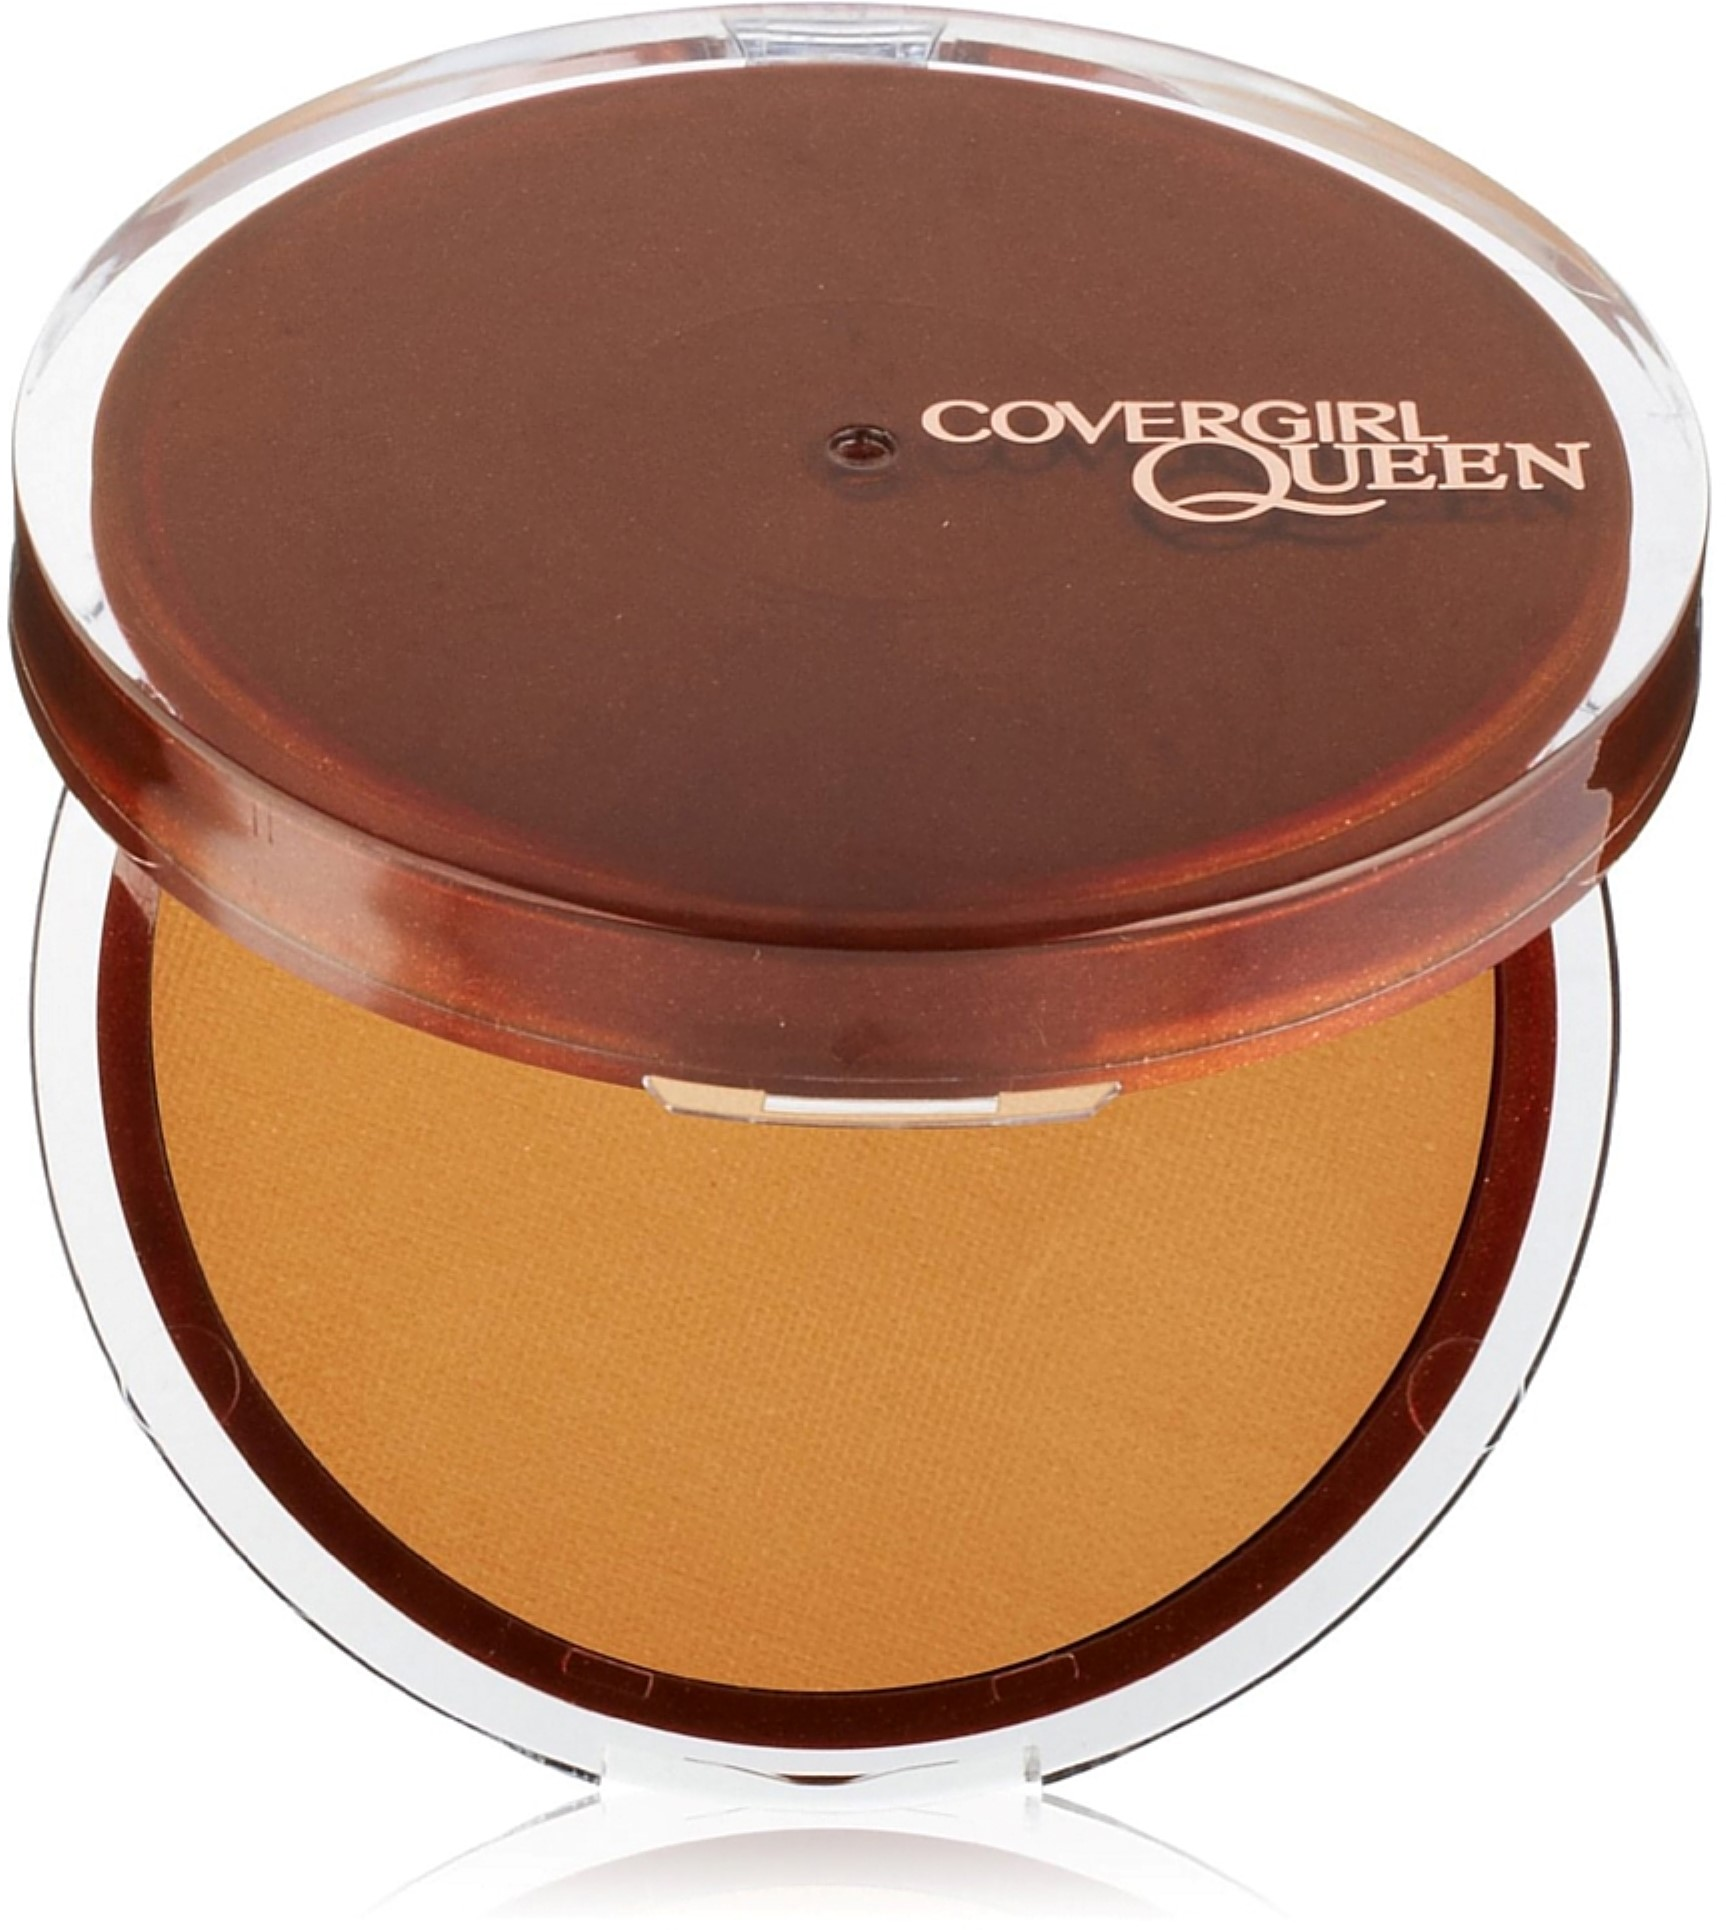 CoverGirl Queen Collection Lasting Matte Pressed Powder, Golden [Q410] 0.37 oz (Pack of 4)